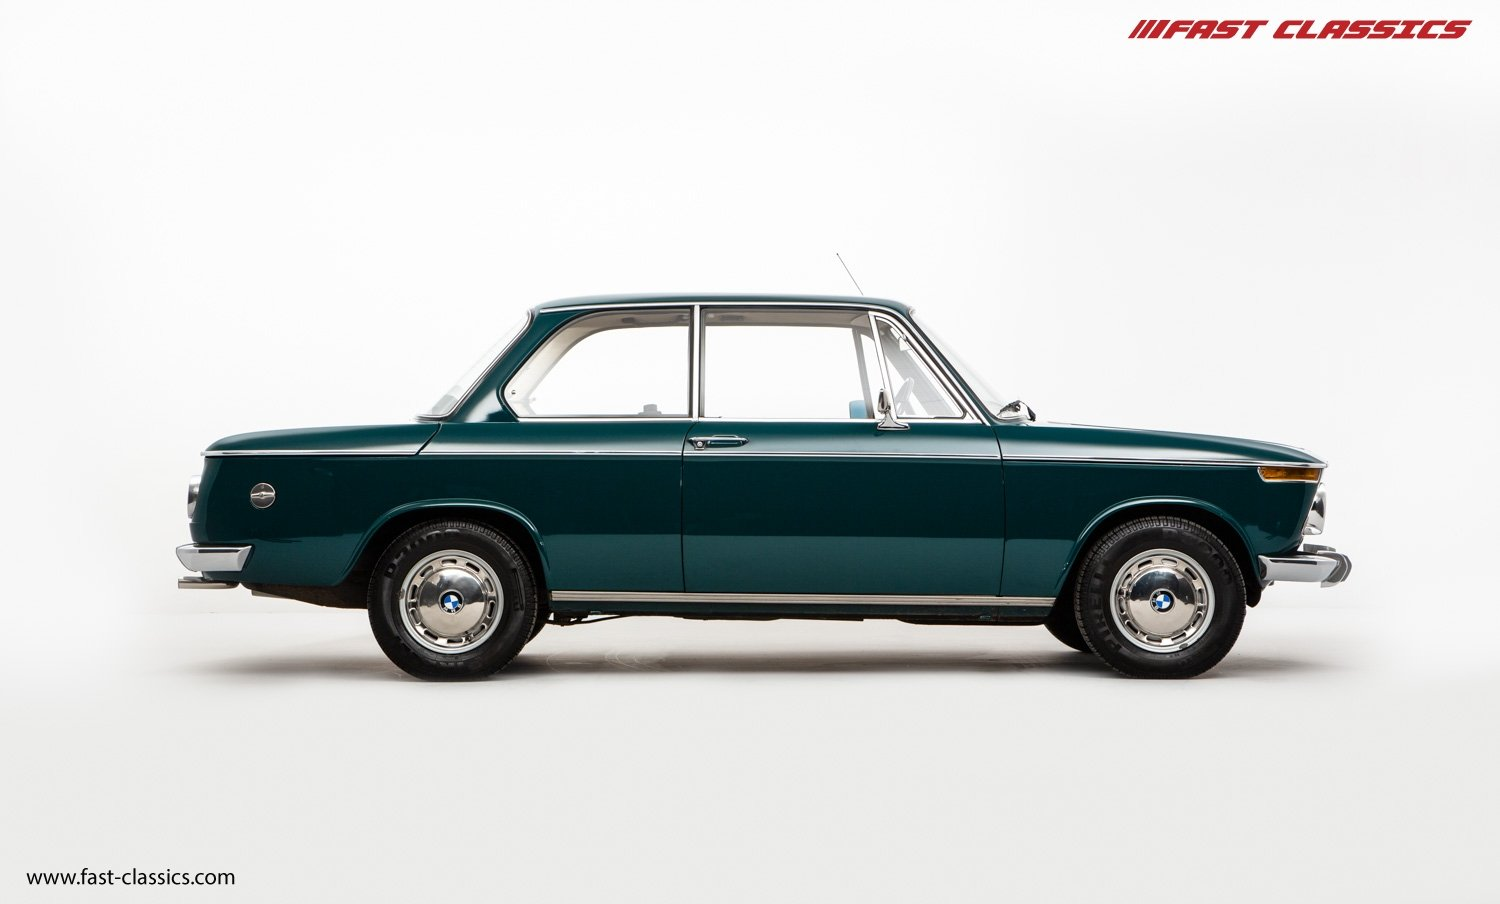 1971 Bmw 2002 Bmw 2002a Agave Green 59k Miles Excellent History Uk Rhd Classic Driver Market